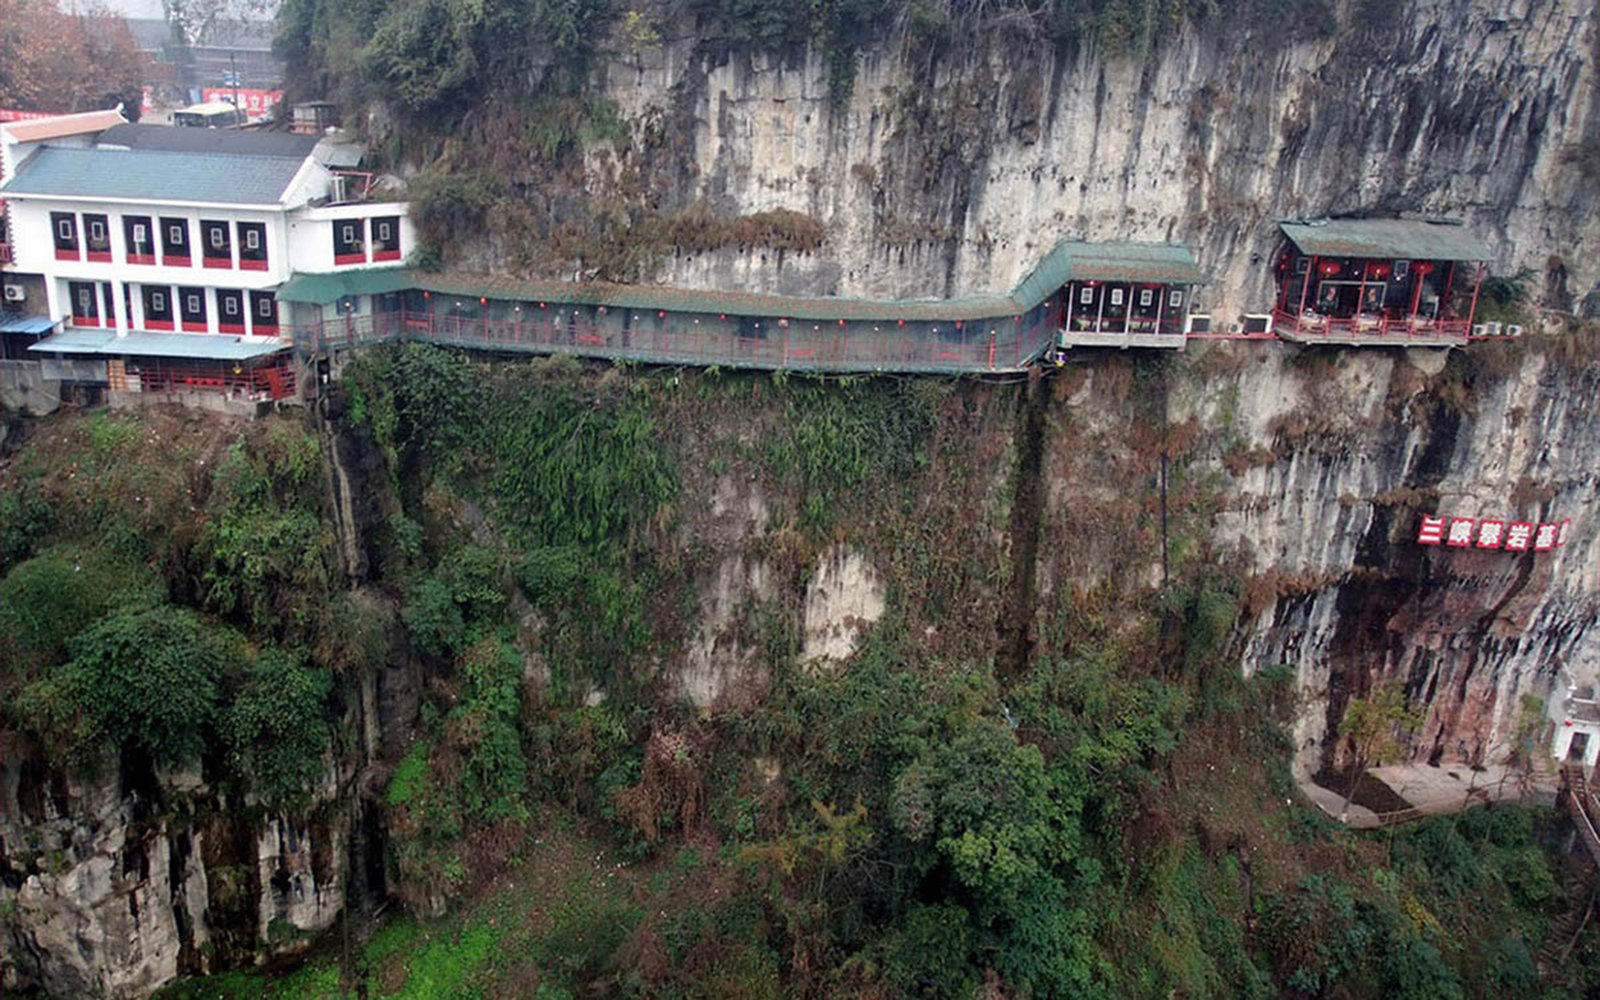 fangweng-hanging-restaurant-yichang-china-outer-view